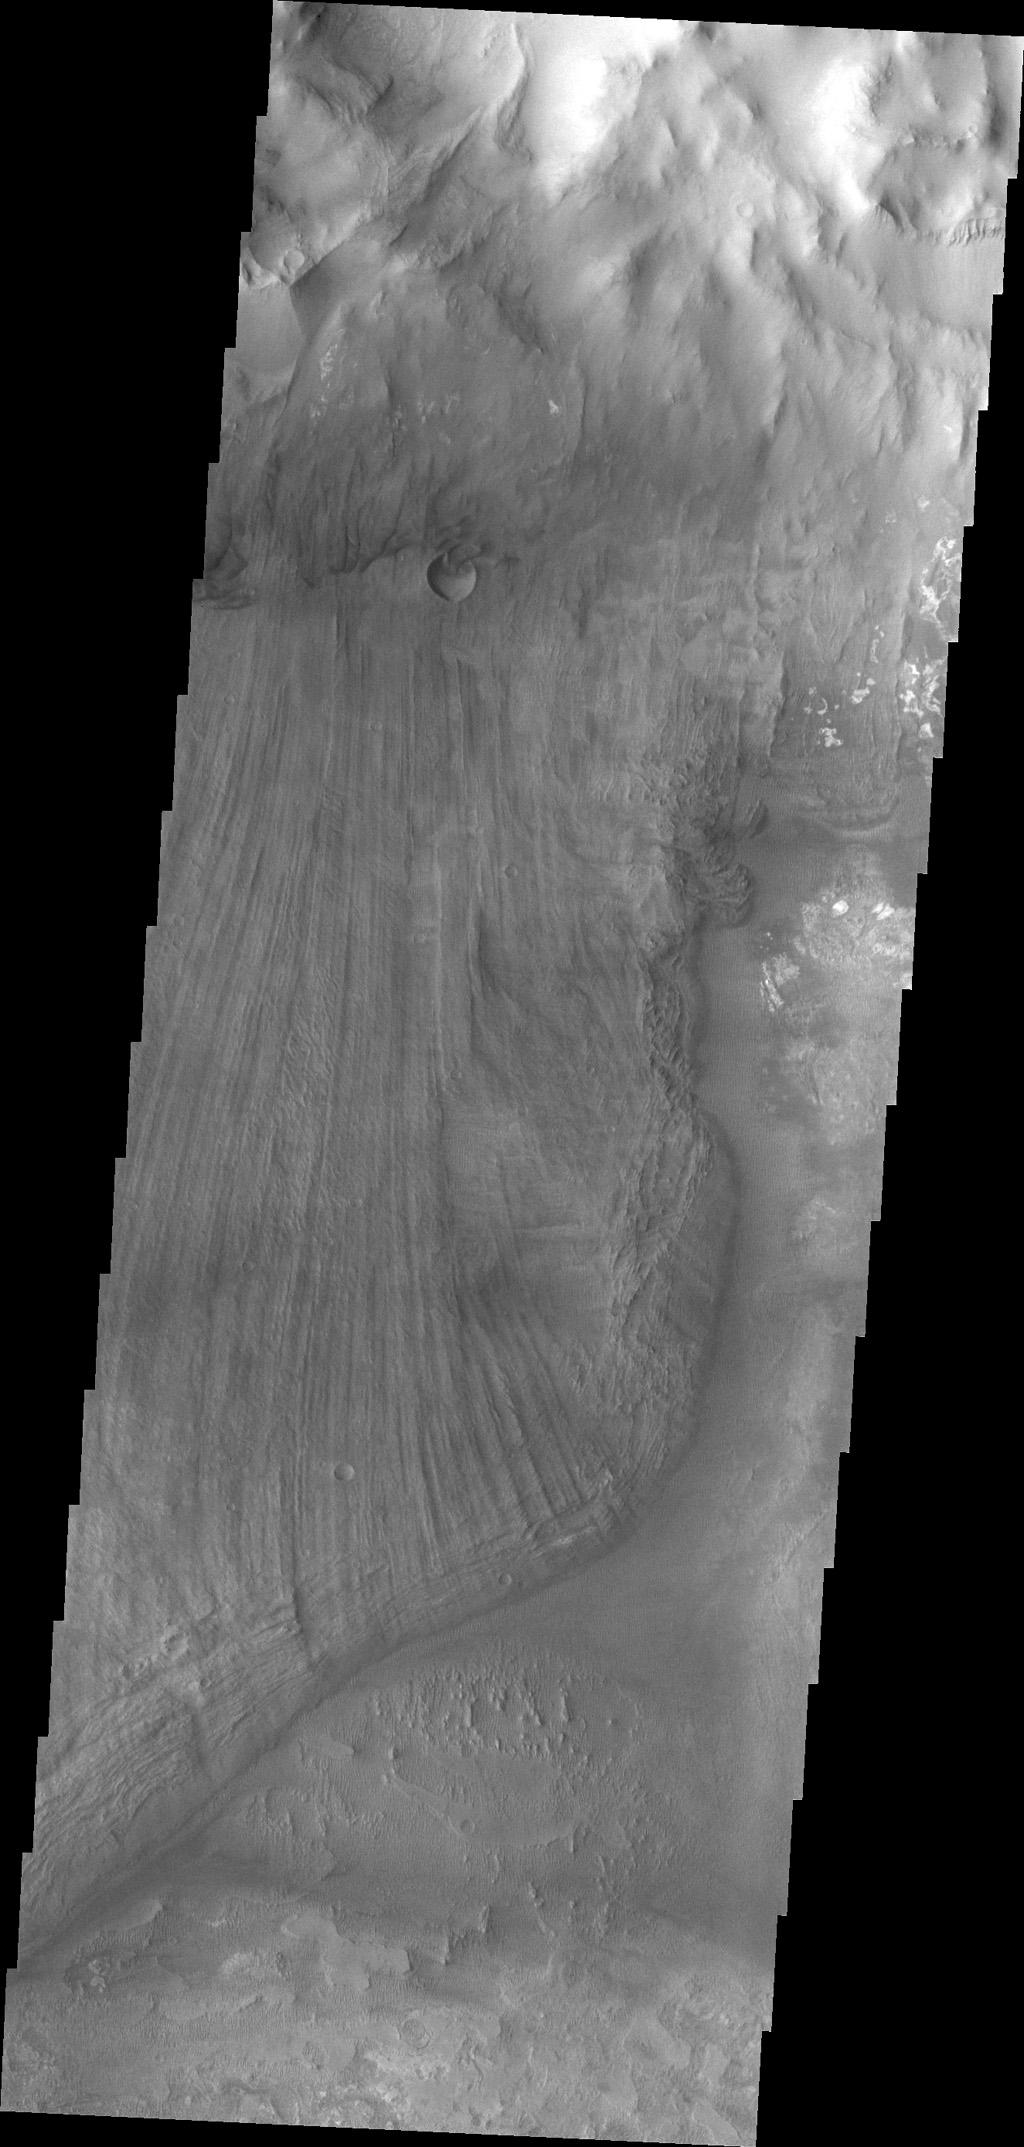 This image from NASA's Mars Odyssey shows a portion of a large landslide deposit in Ius Chasma.